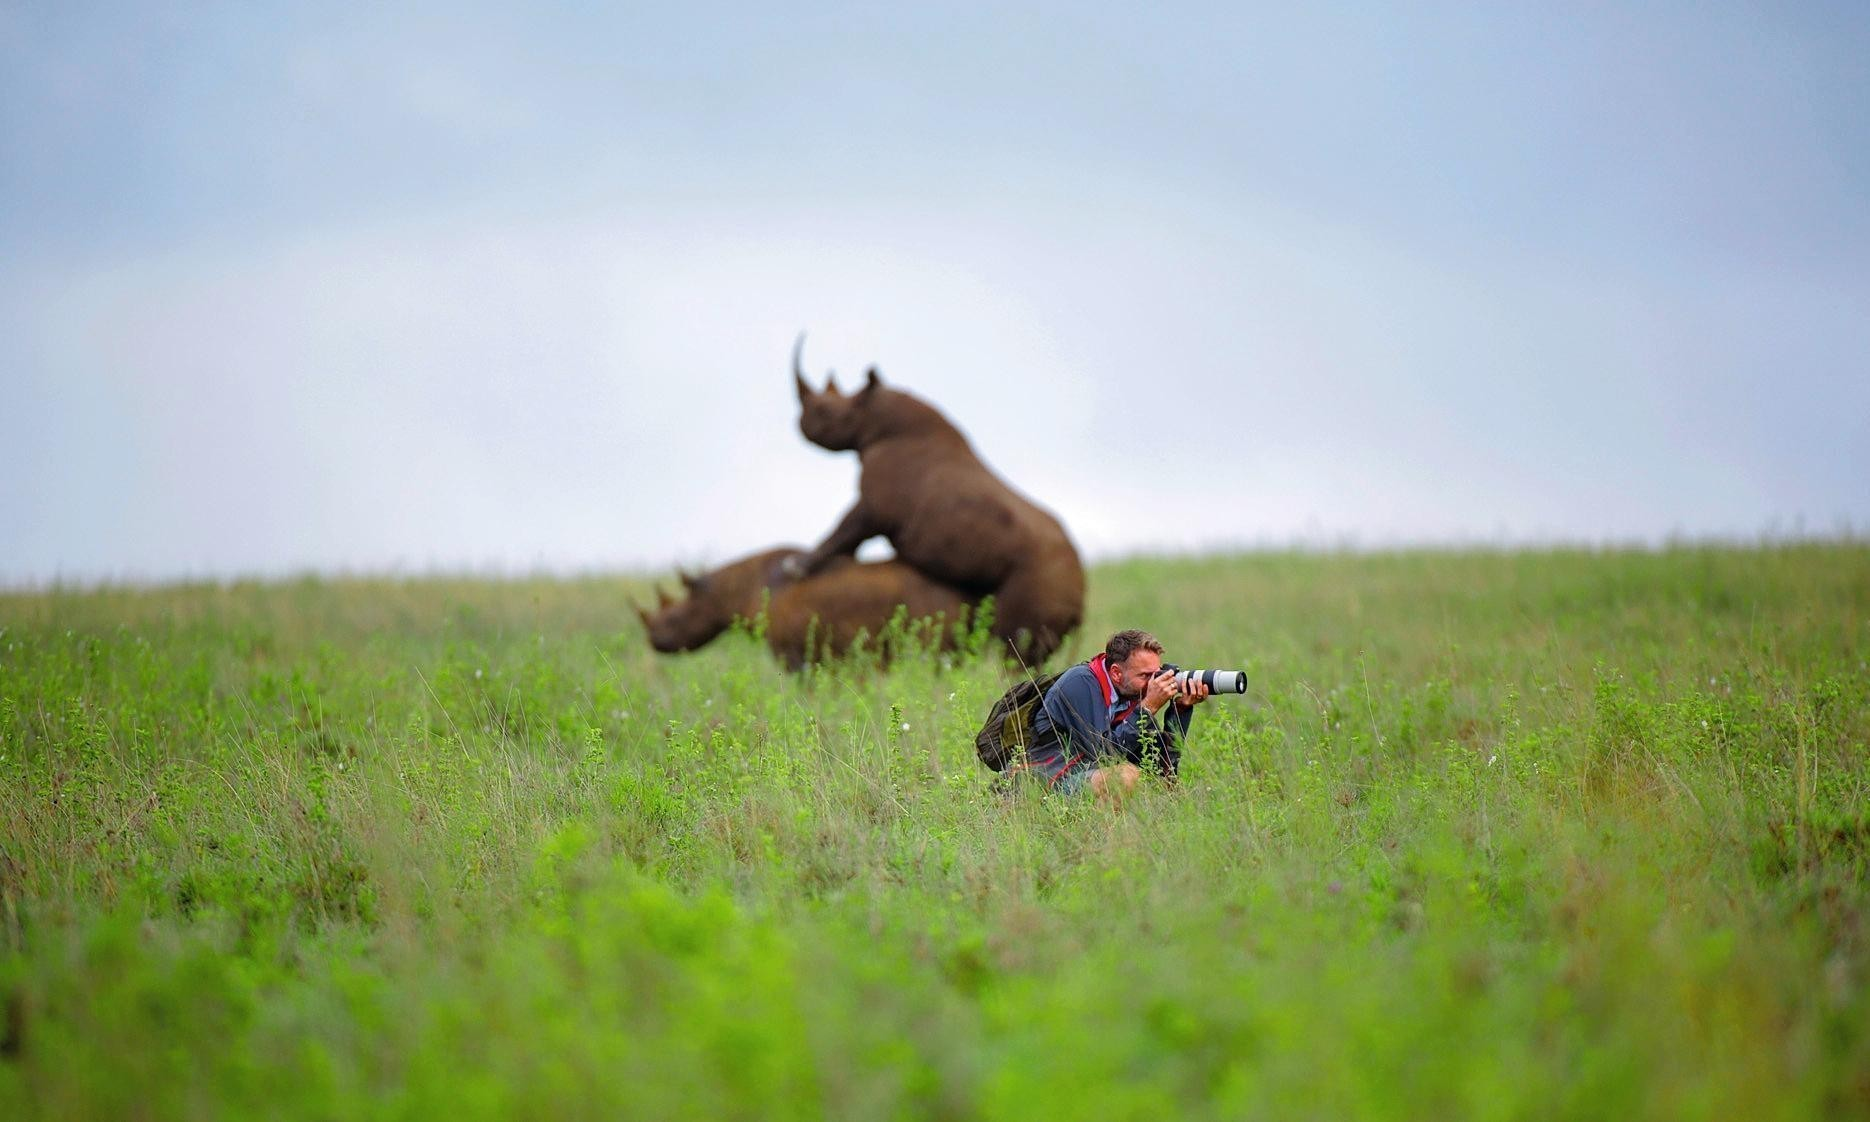 Photographer Greg Armfield on how he missed mating rhinos at Nairobi national park